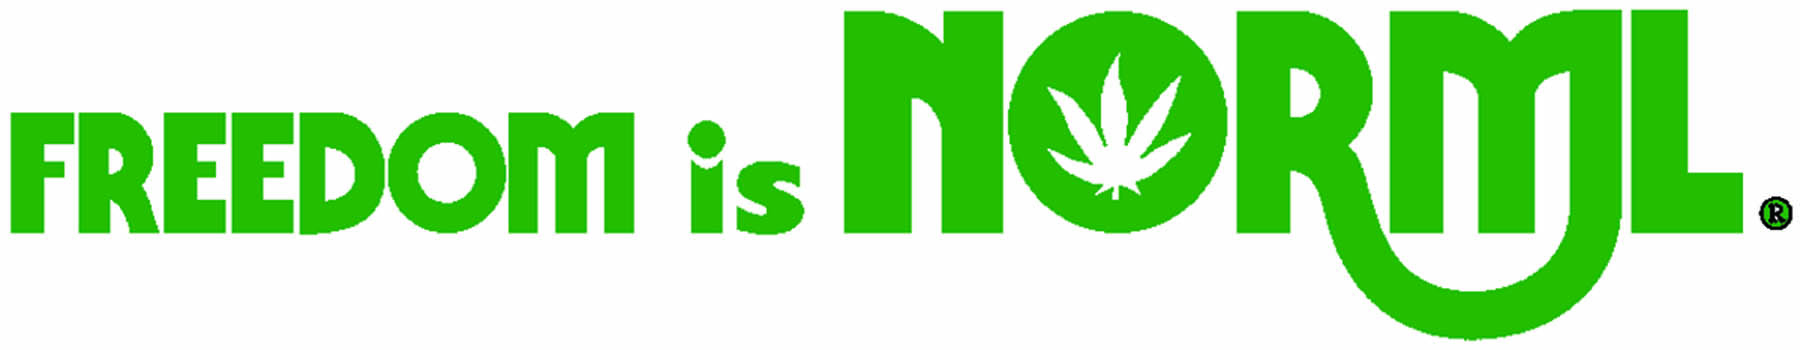 https://i2.wp.com/assets.blog.norml.org/wp-content/uploads/2011/03/Freedom_is_NORML-1-Line.jpg